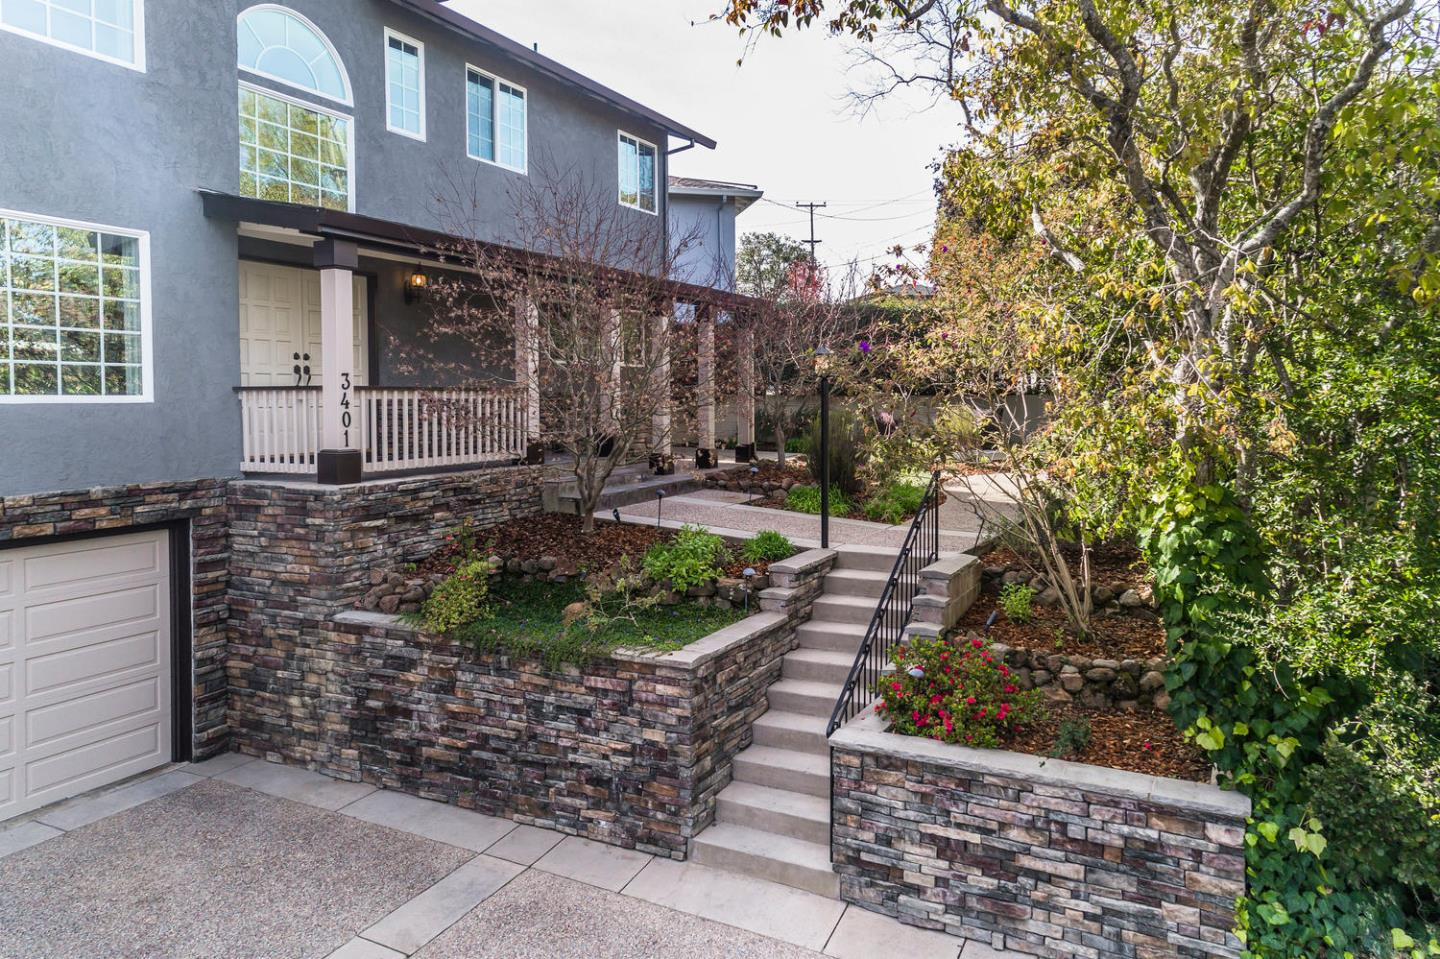 Single Family Home for Sale at 3401 Lodge Drive 3401 Lodge Drive Belmont, California 94002 United States